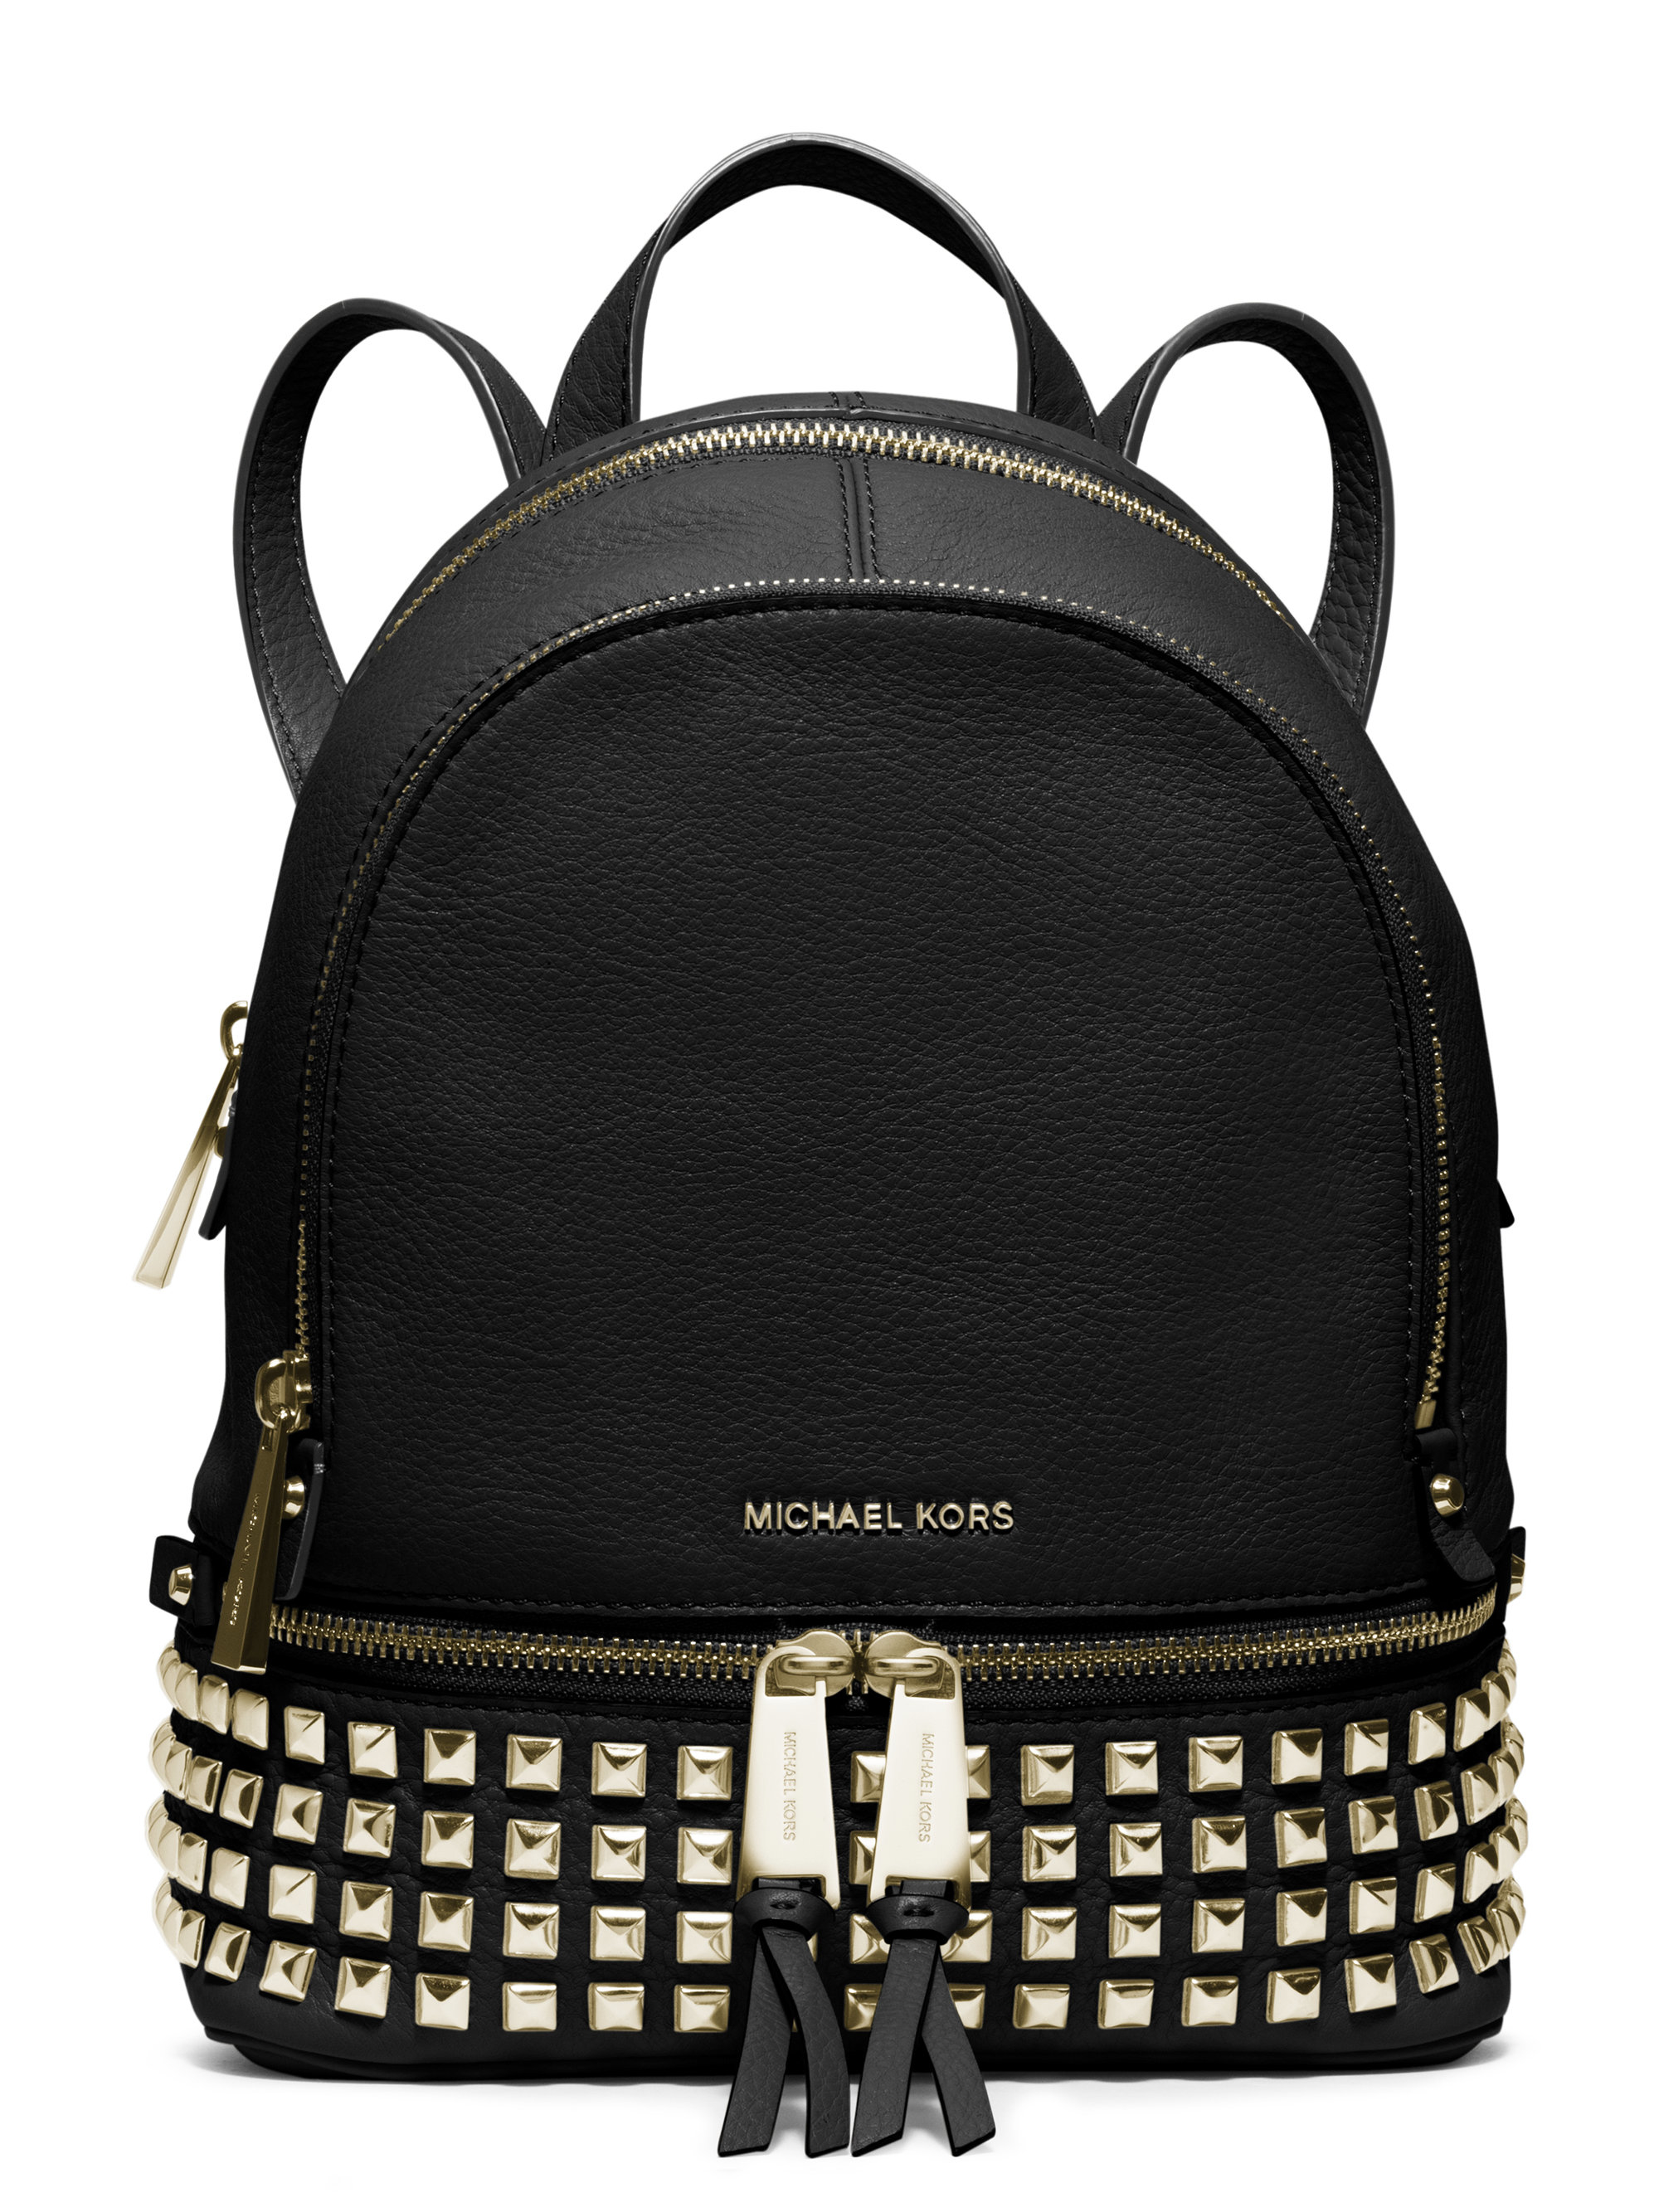 spiked leather backpack Backpack Tools